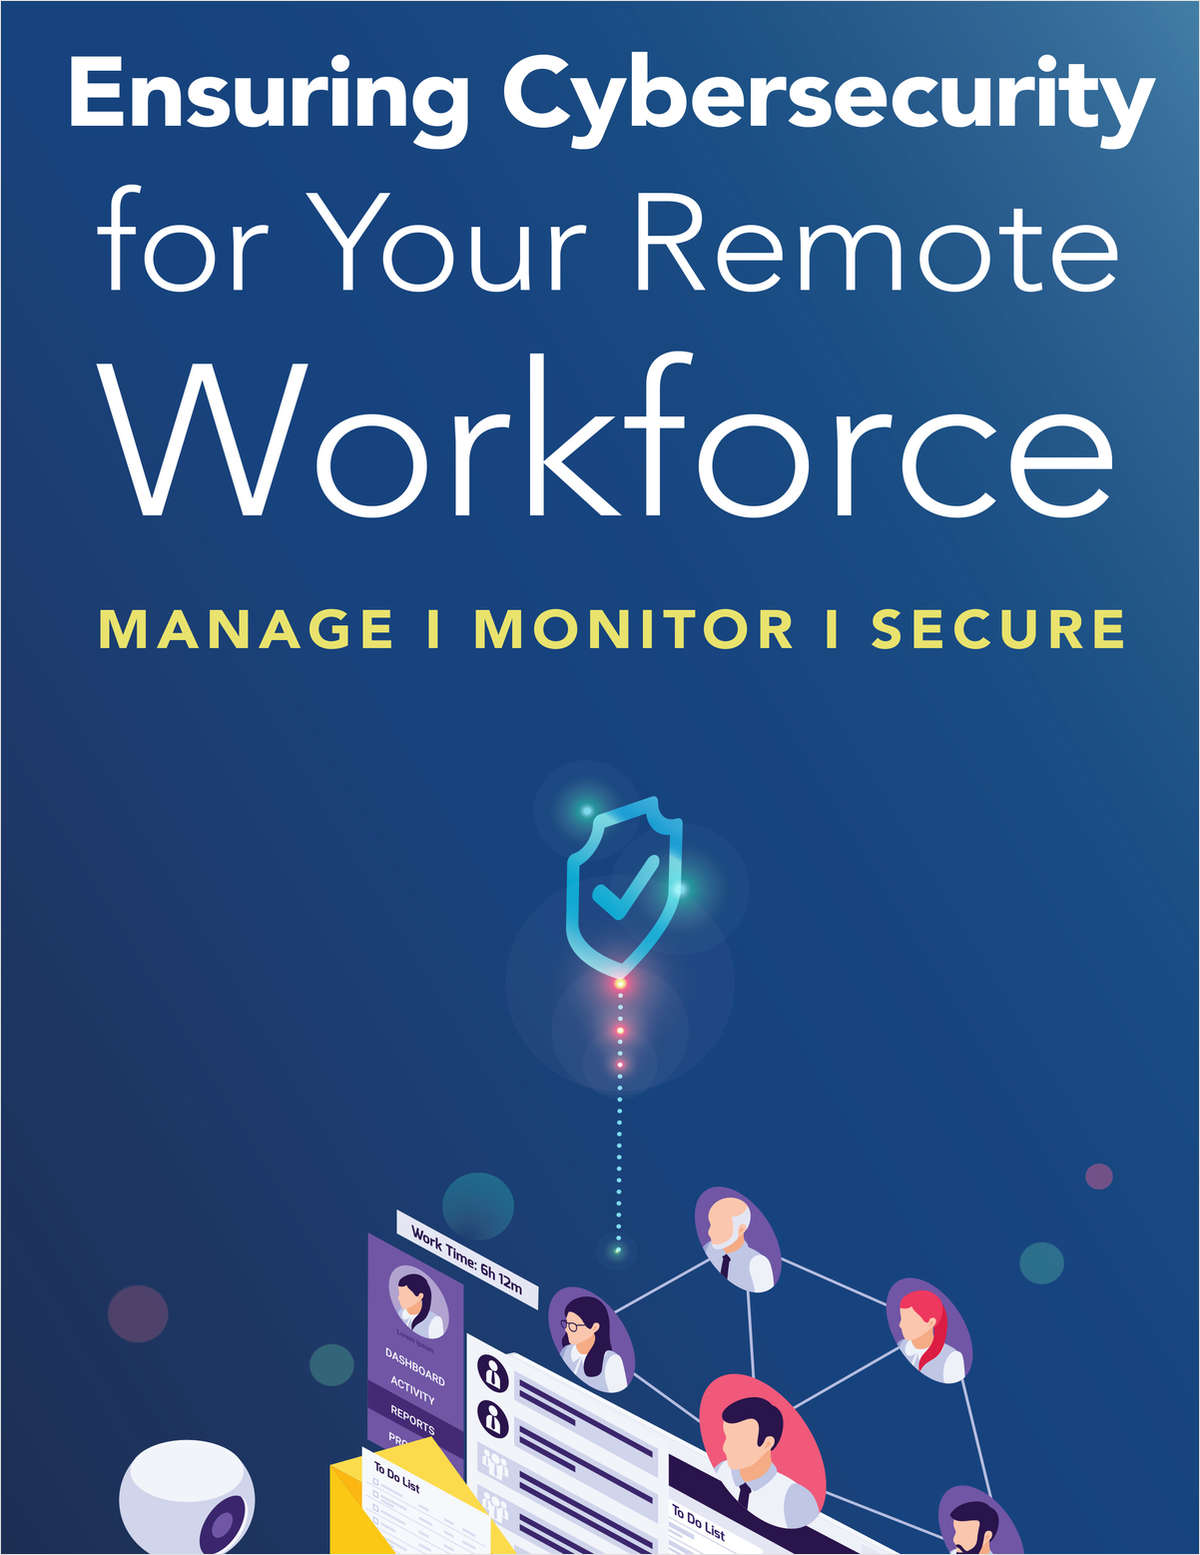 Ensuring Cybersecurity for Your Remote Workforce